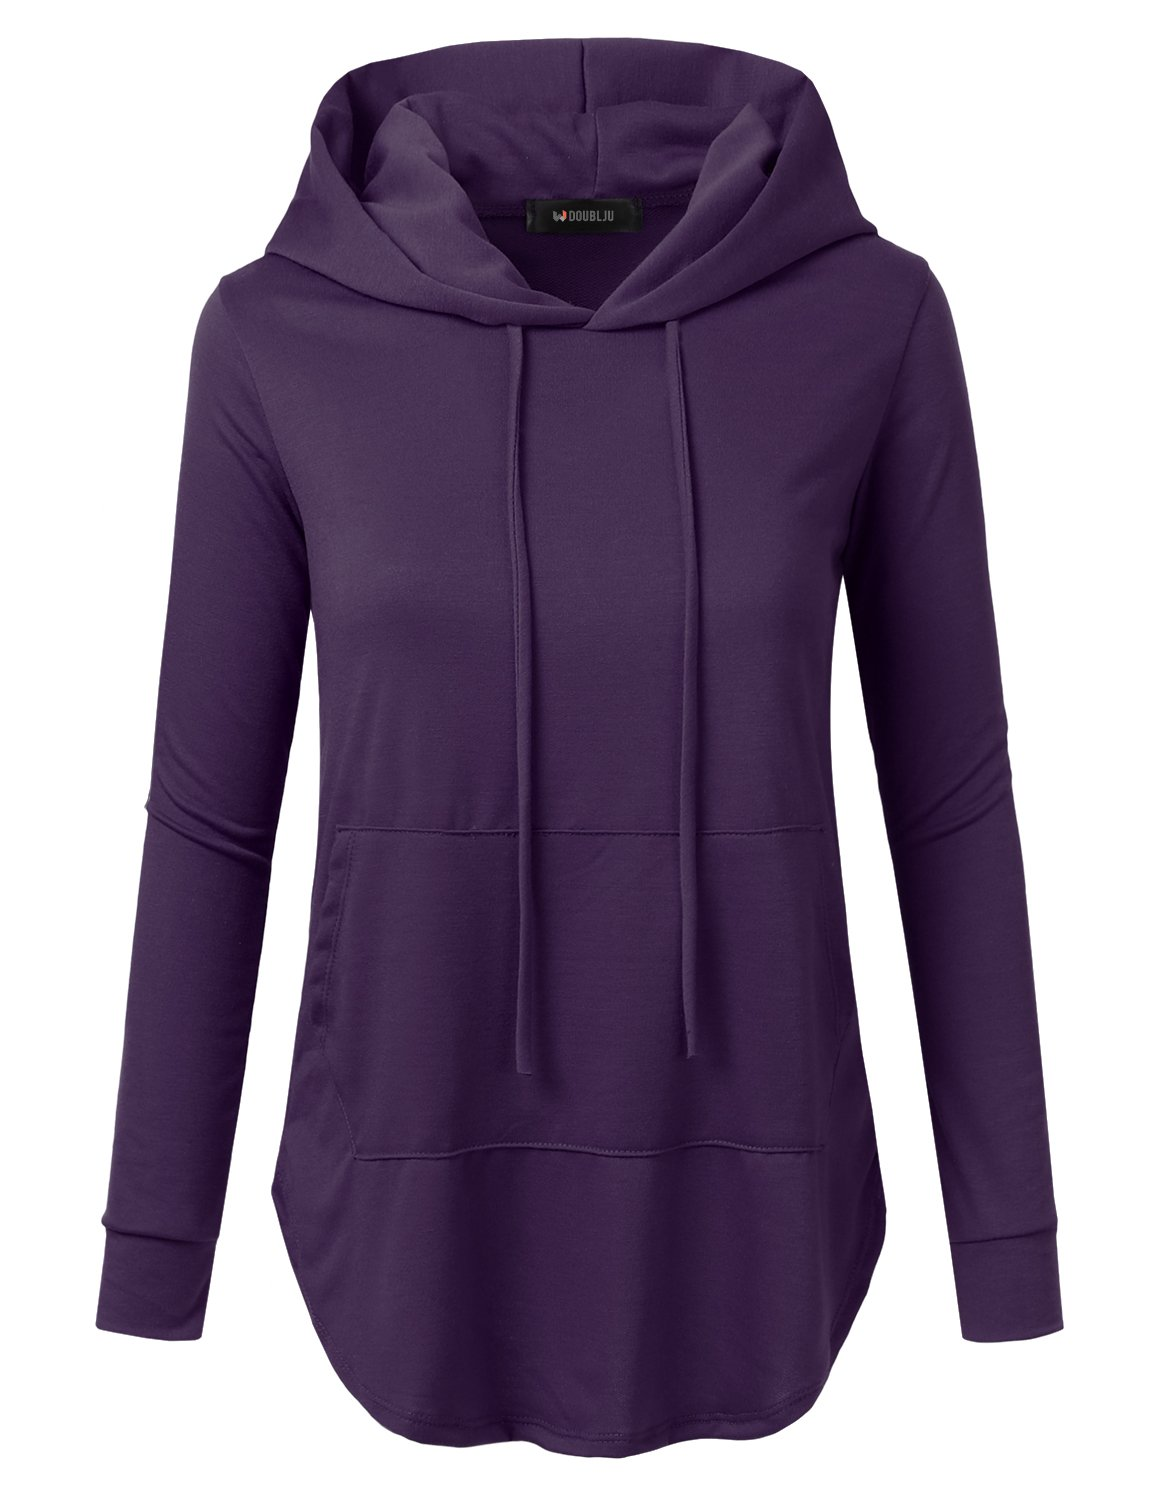 Doublju Loose Fit Pullover Hoodie with Kangaroo Pocket for Womens with Plus Size (Made in USA) Eggplant 2XL